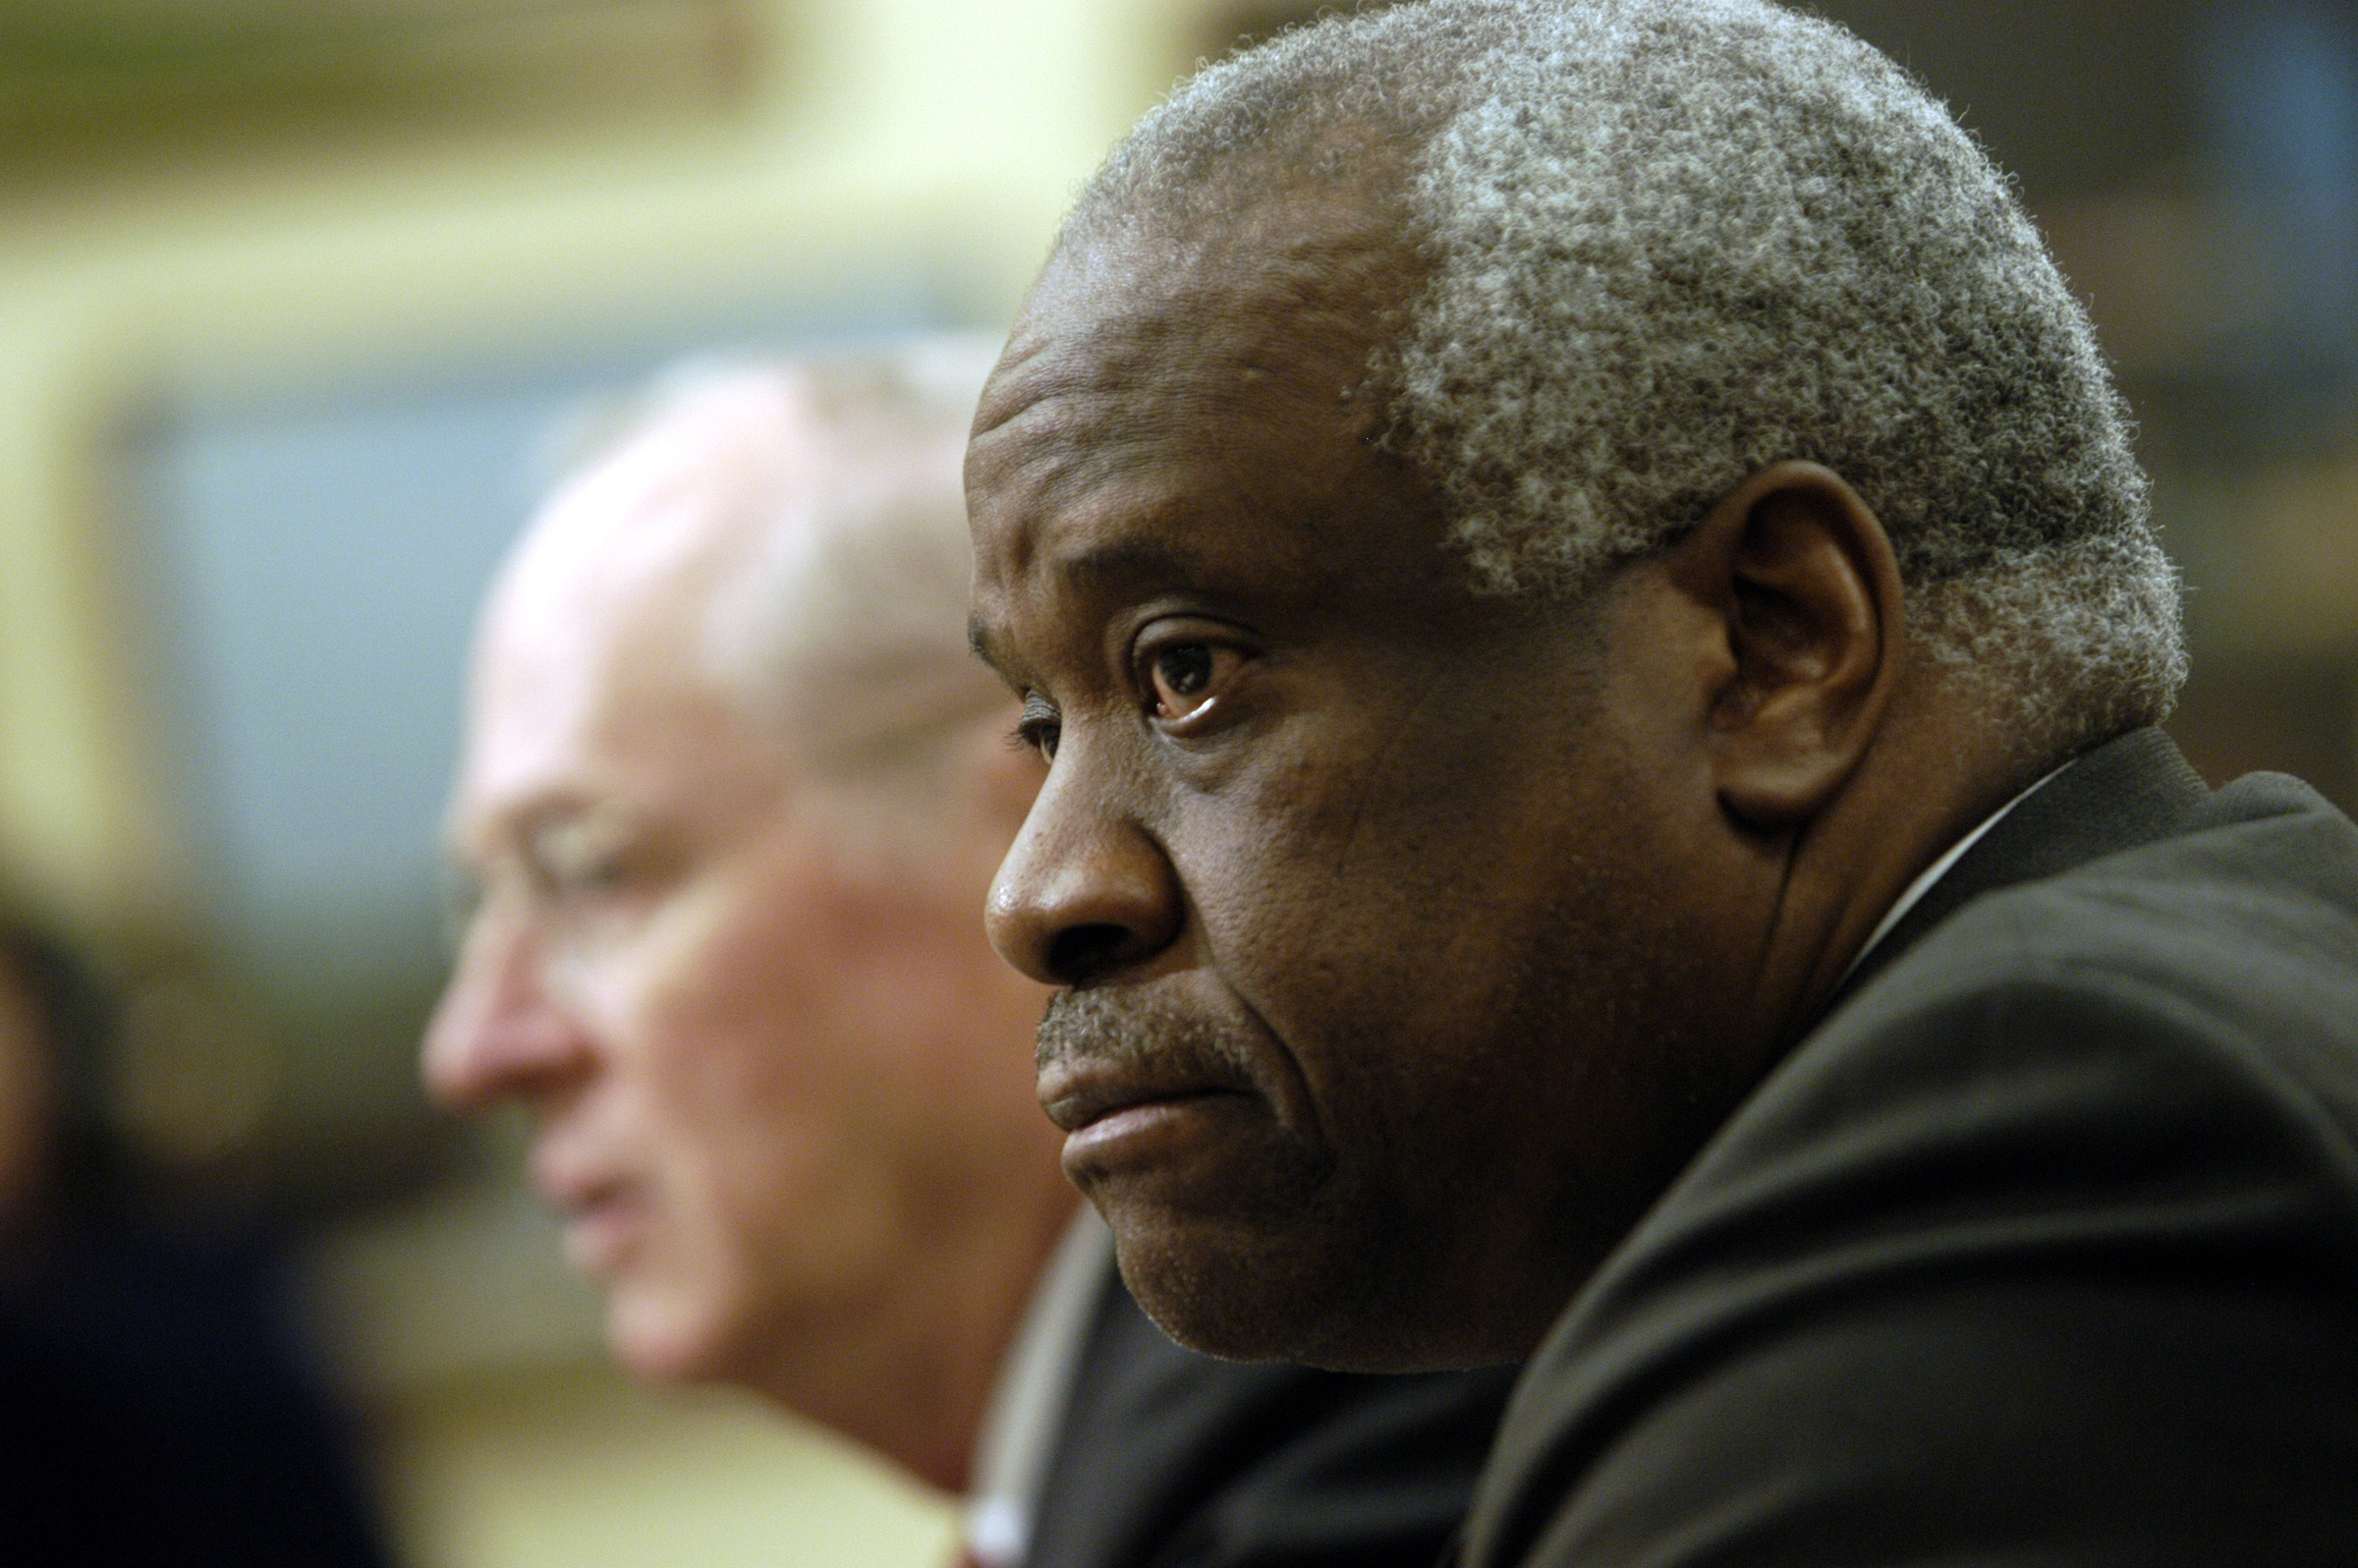 Supreme Court Justice Clarence Thomas in 2006. (CQ Roll Call file photo)